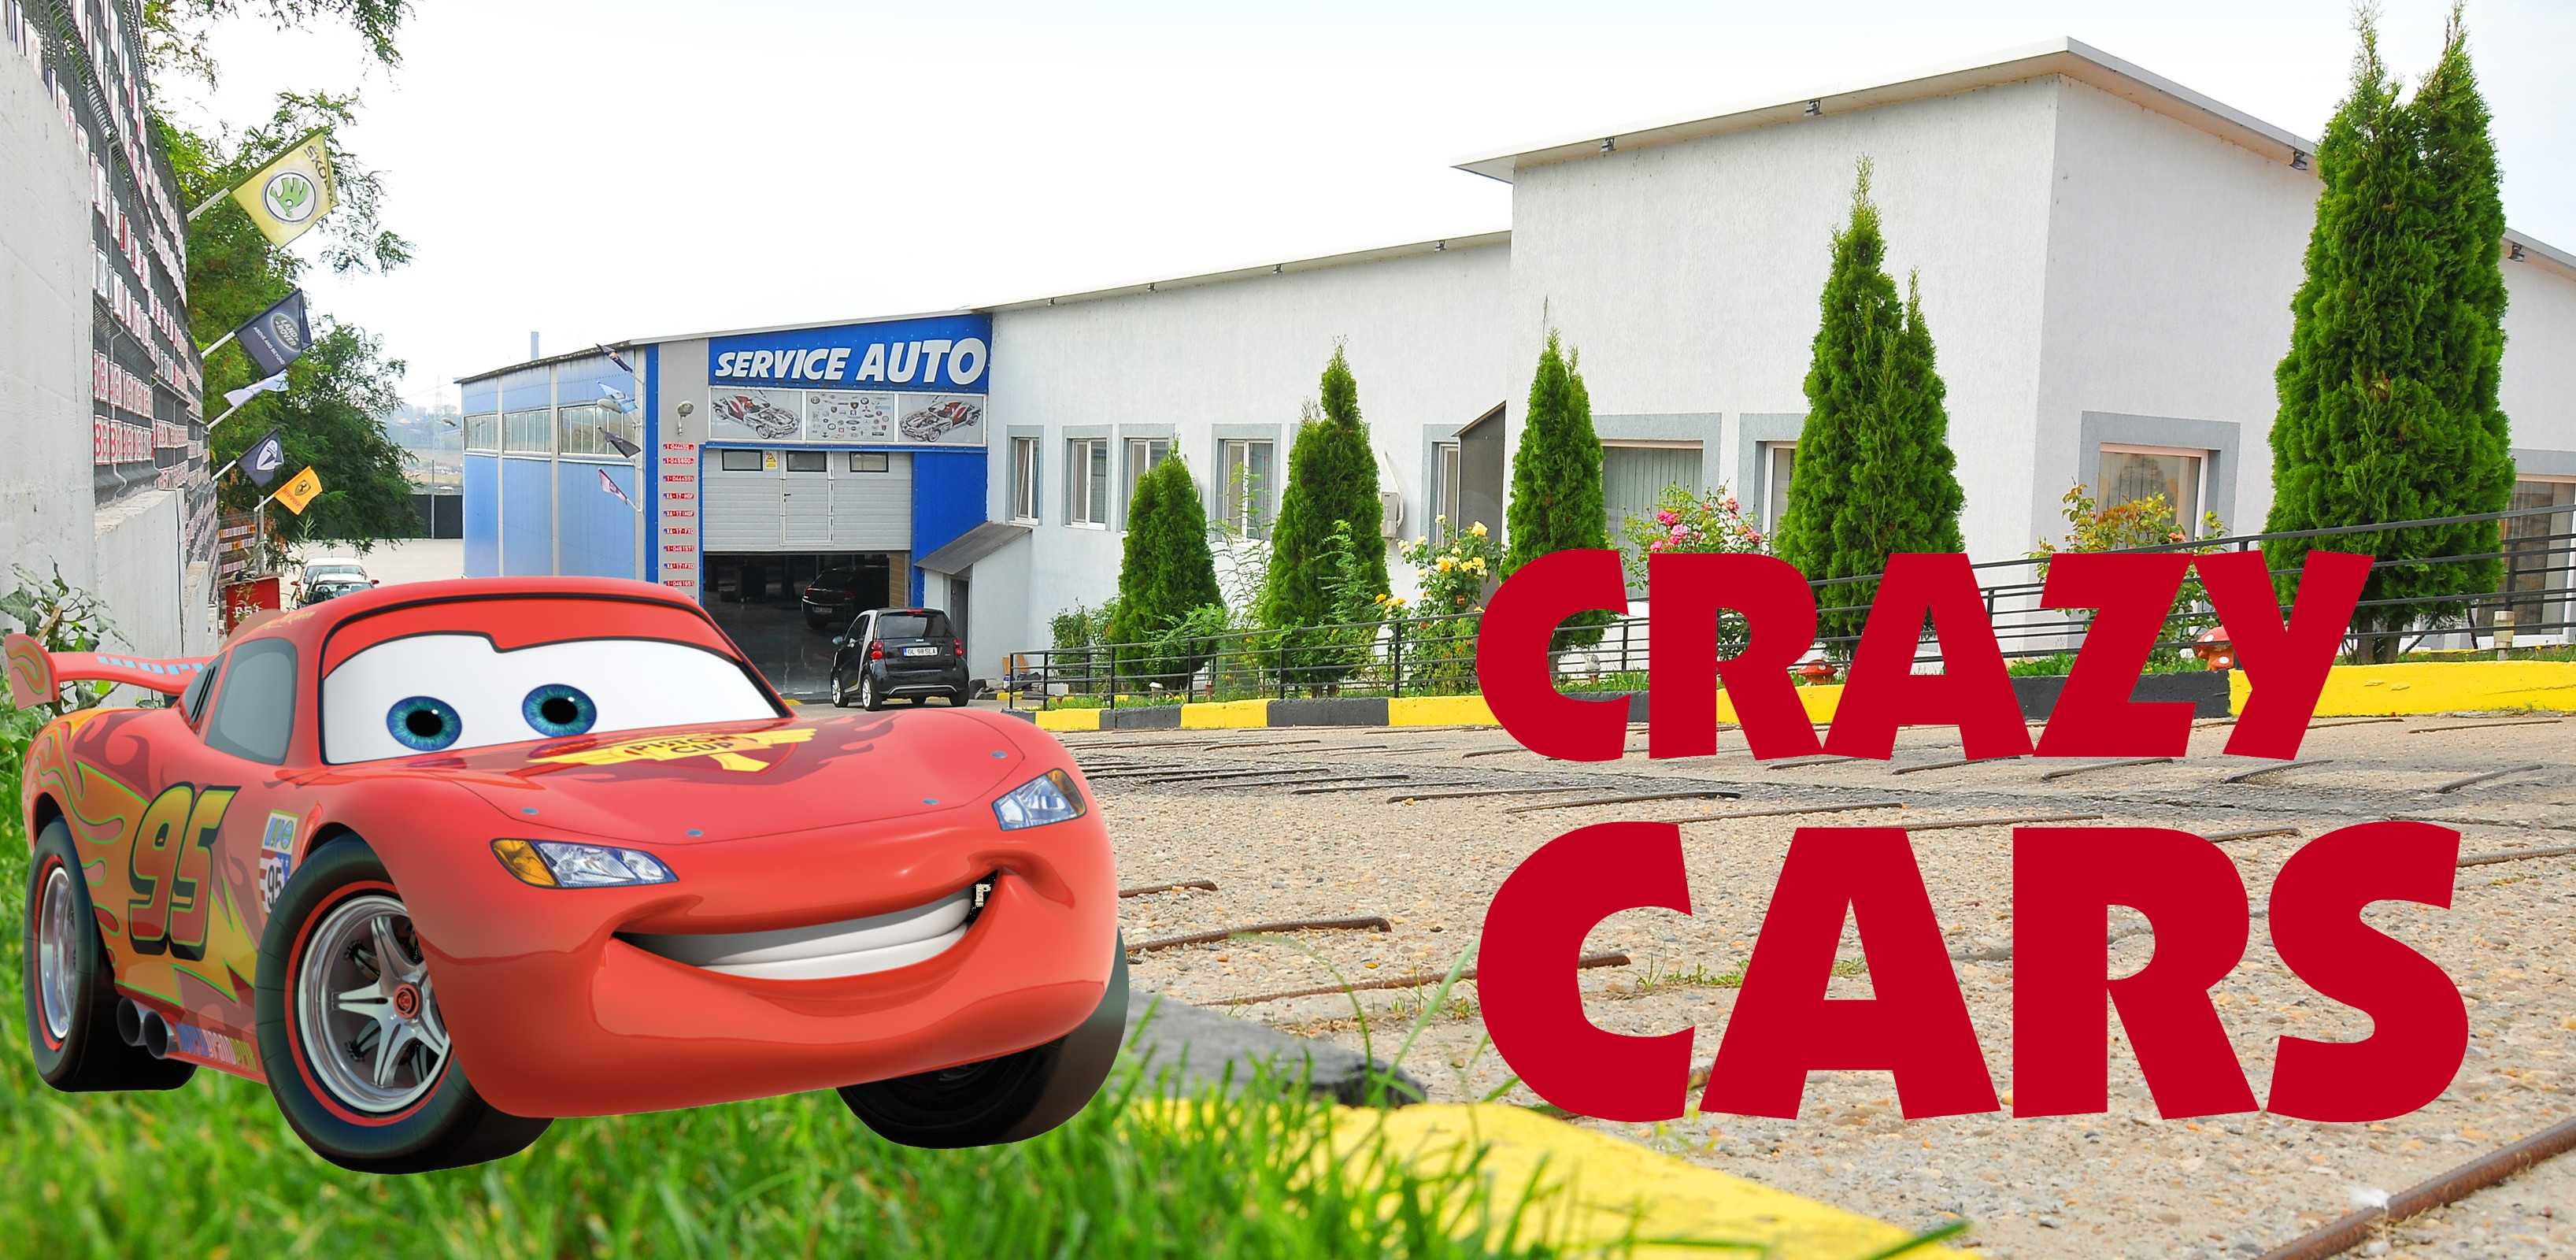 coperta_crazy-cars_2